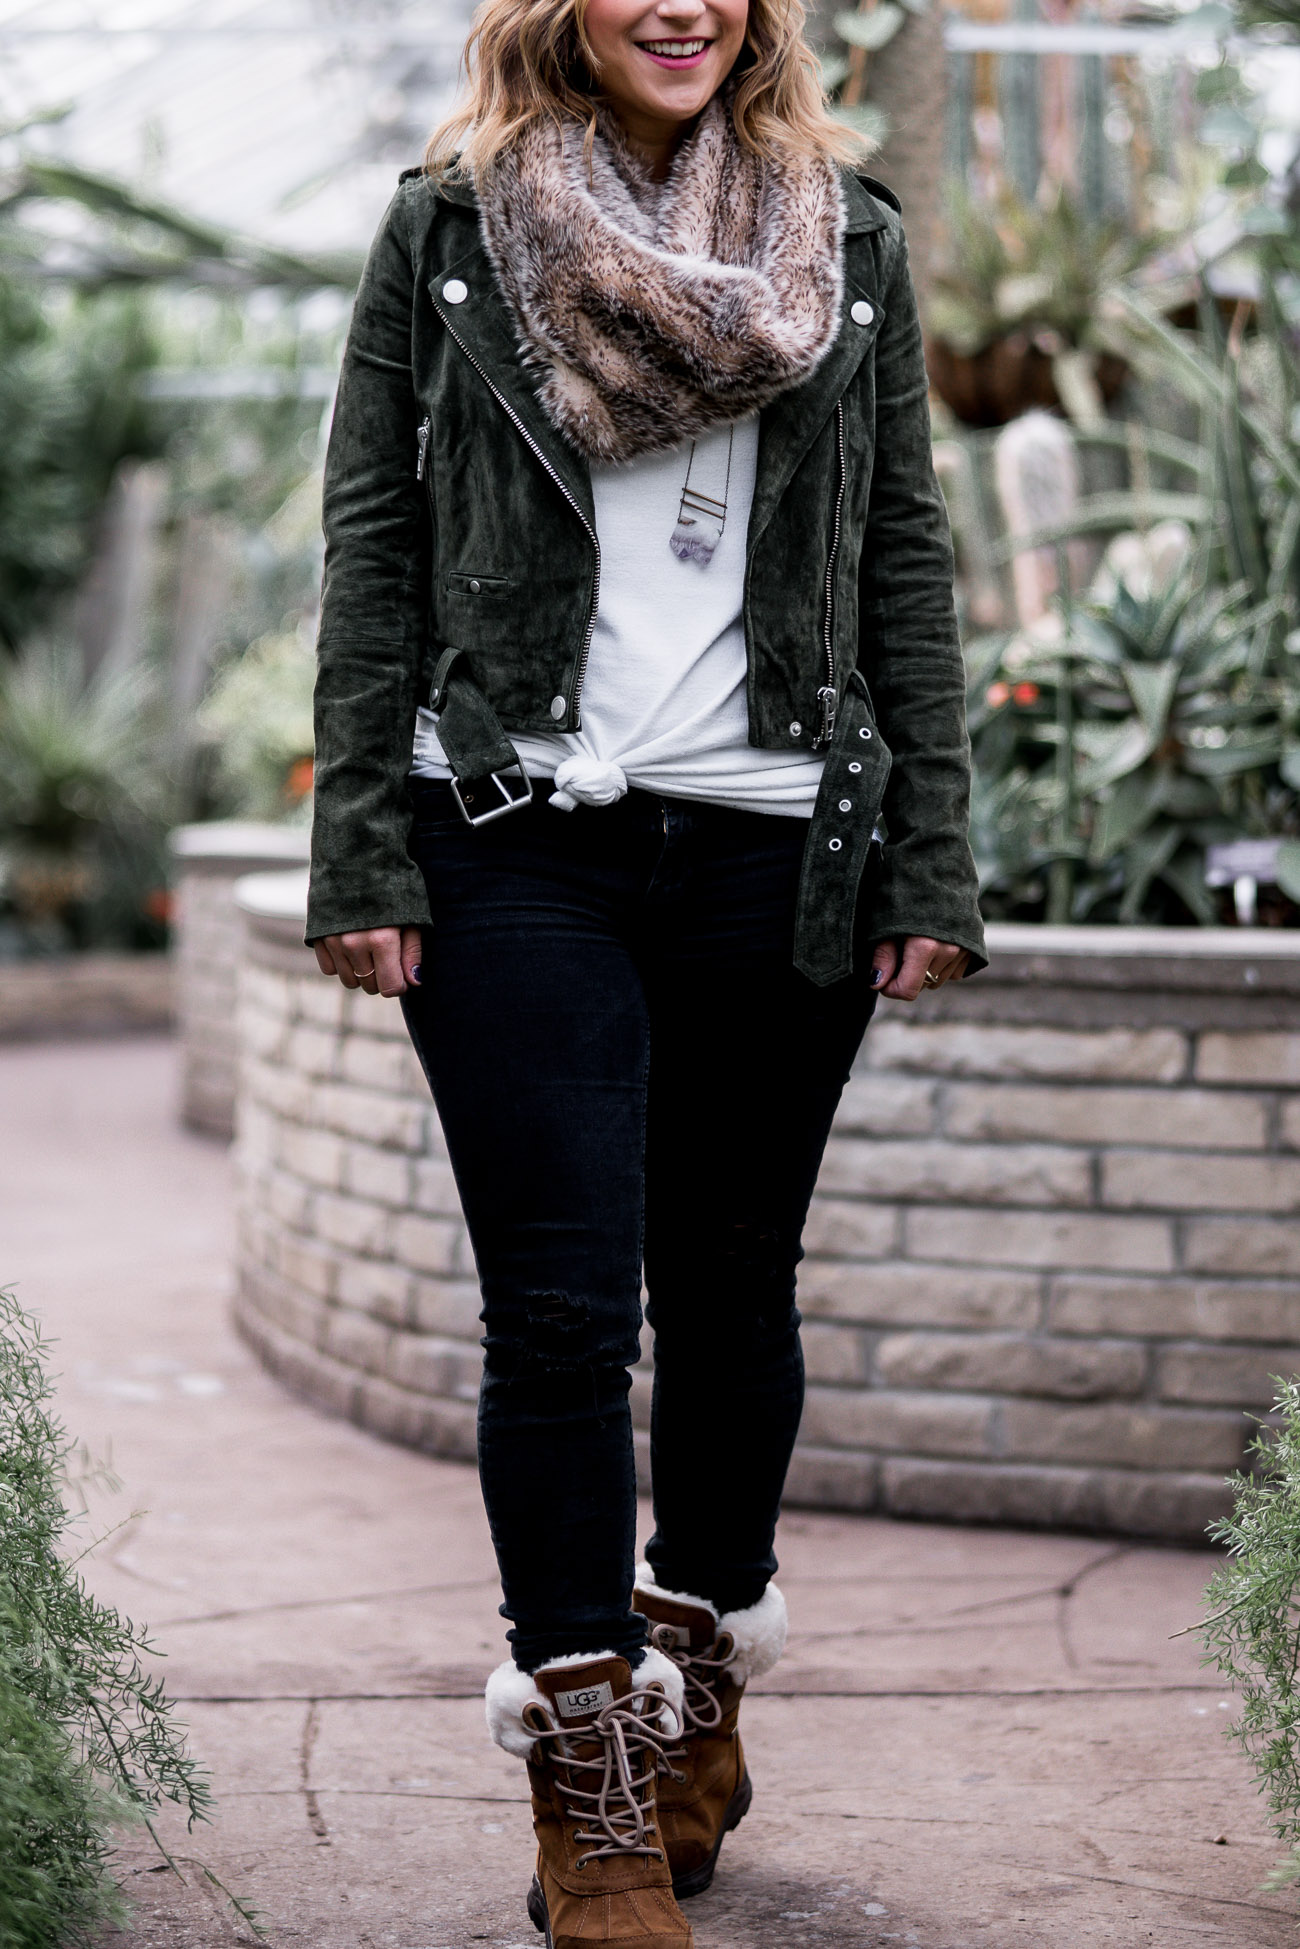 Jackie is a Canadian fashion blogger, who is wearing a faux fur scarf with a olive green suede Blank Denim Motorcycle jacket